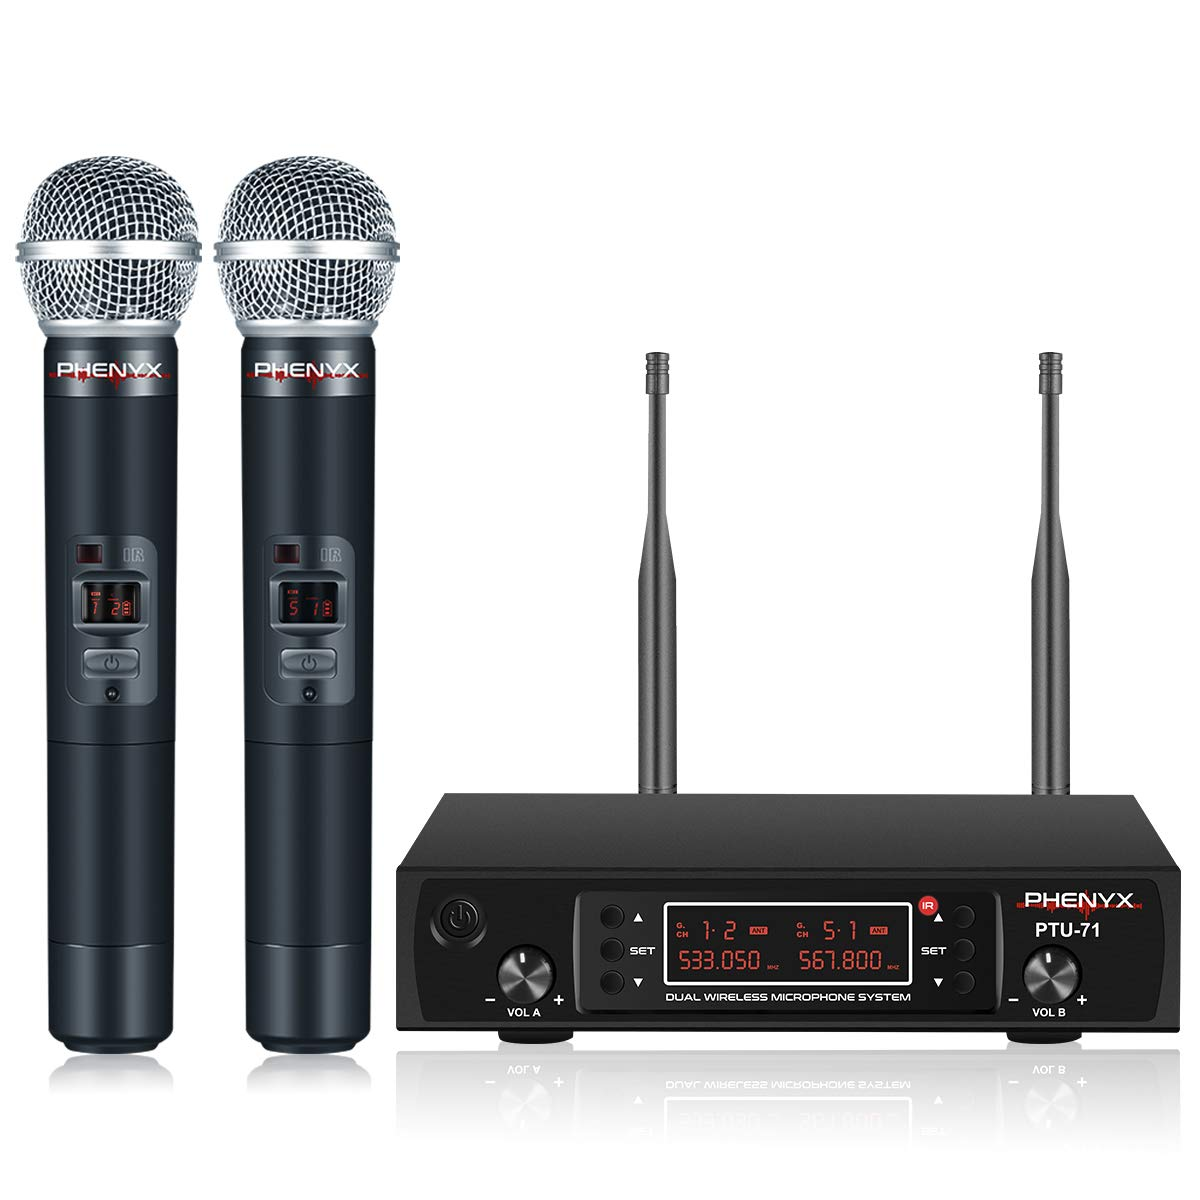 Wireless Microphone System, Phenyx Pro PTU-71 Dual UHF Cordless Mic Set With Handheld Mics, All Metal, 200 Channels, Interference-free Long Distance Operation, Ideal for DJ, Church, Weddings(PTU-71A)